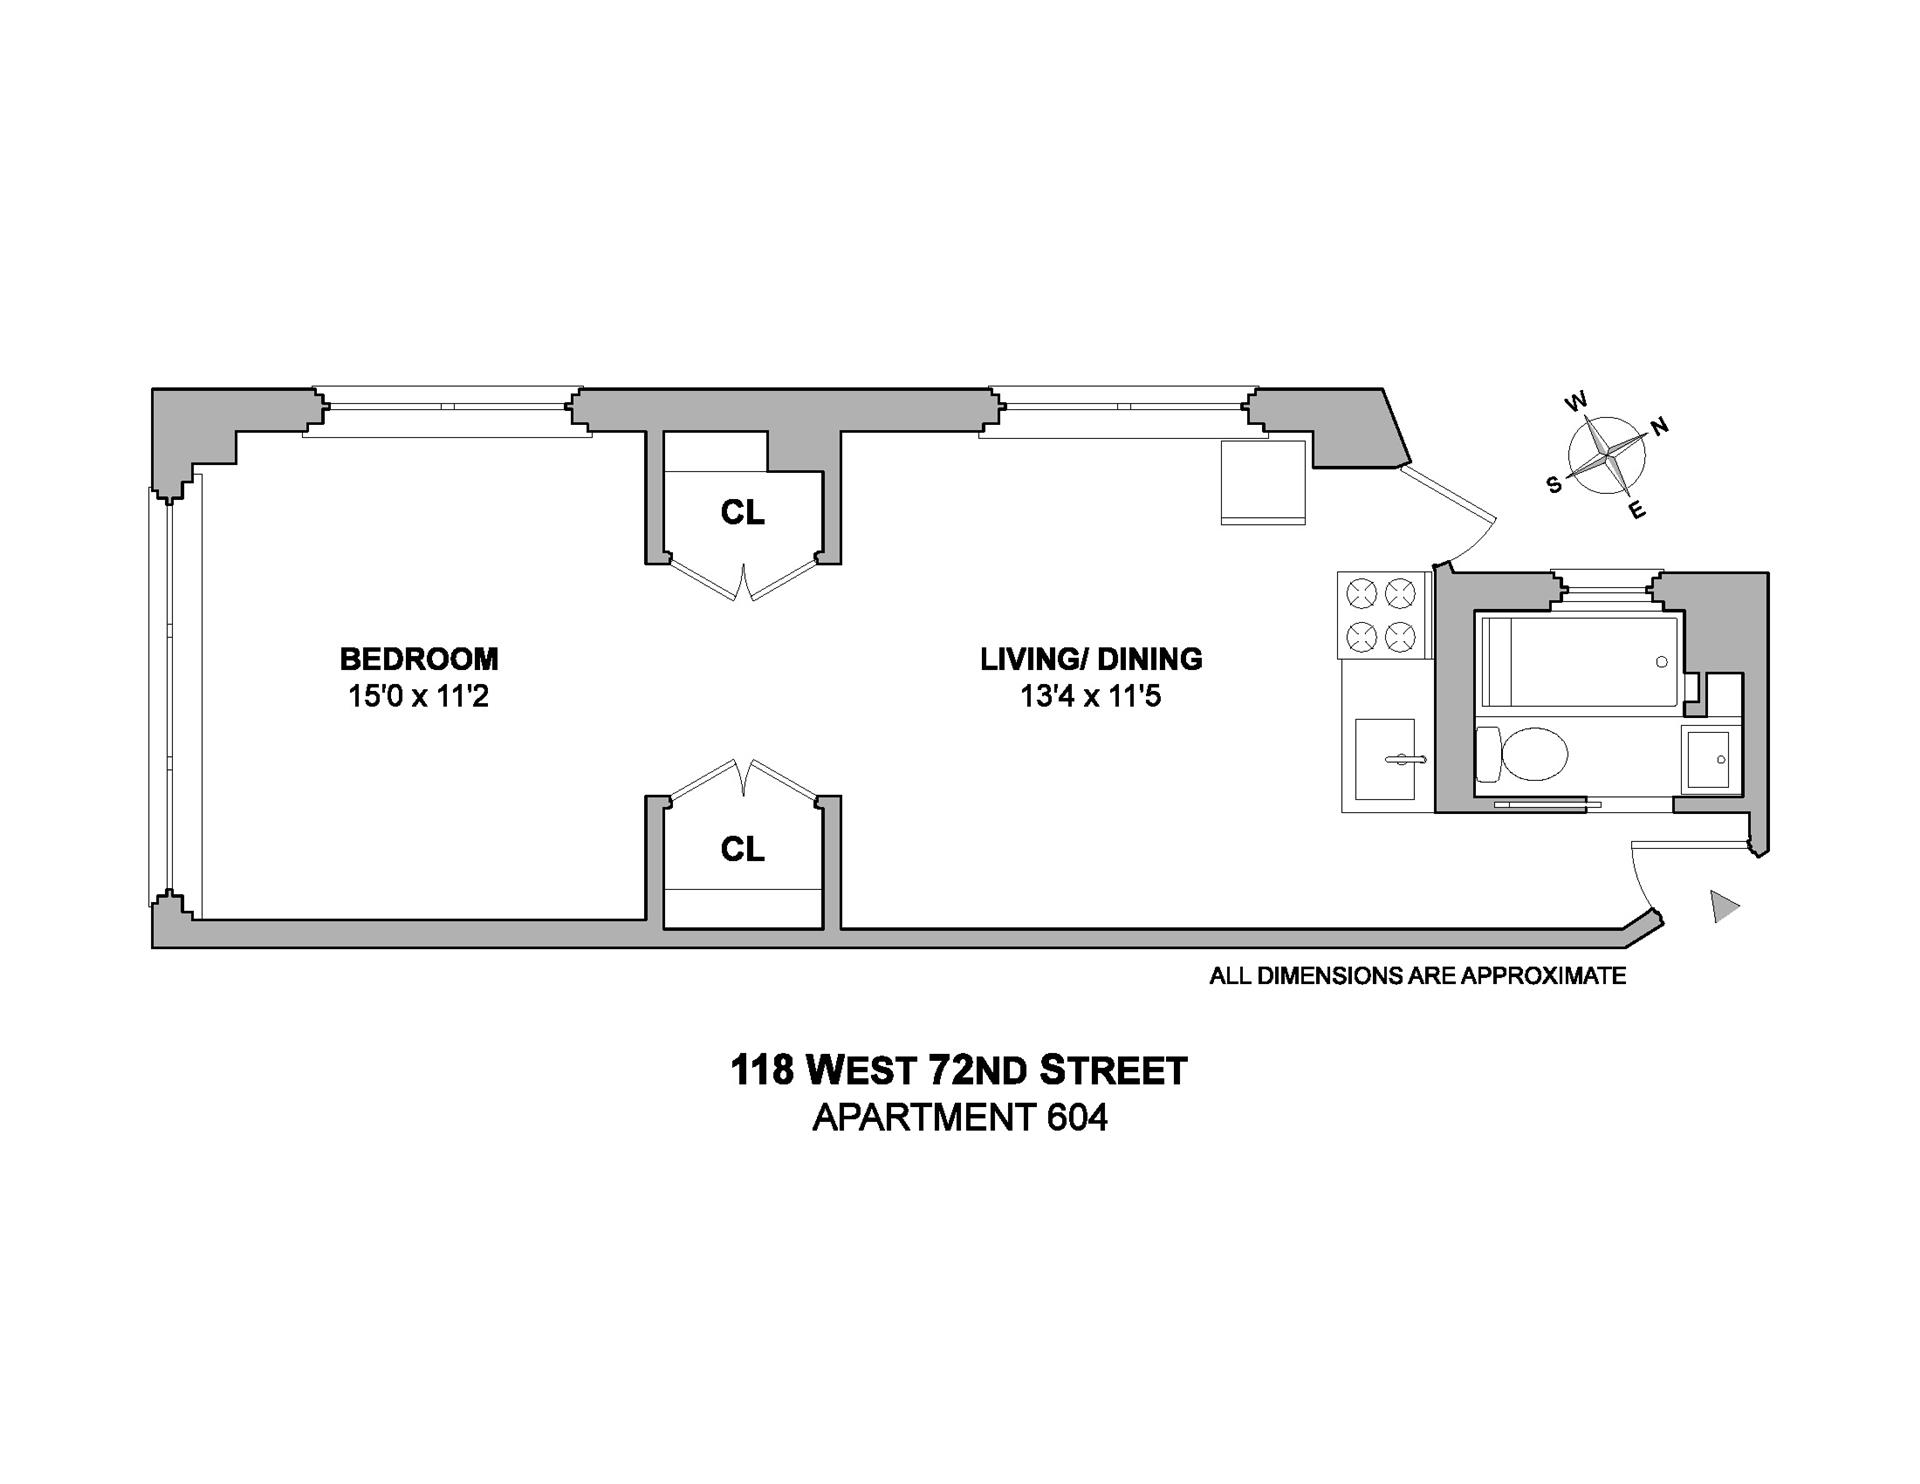 Floor plan of 118 West 72nd St, 604 - Upper West Side, New York